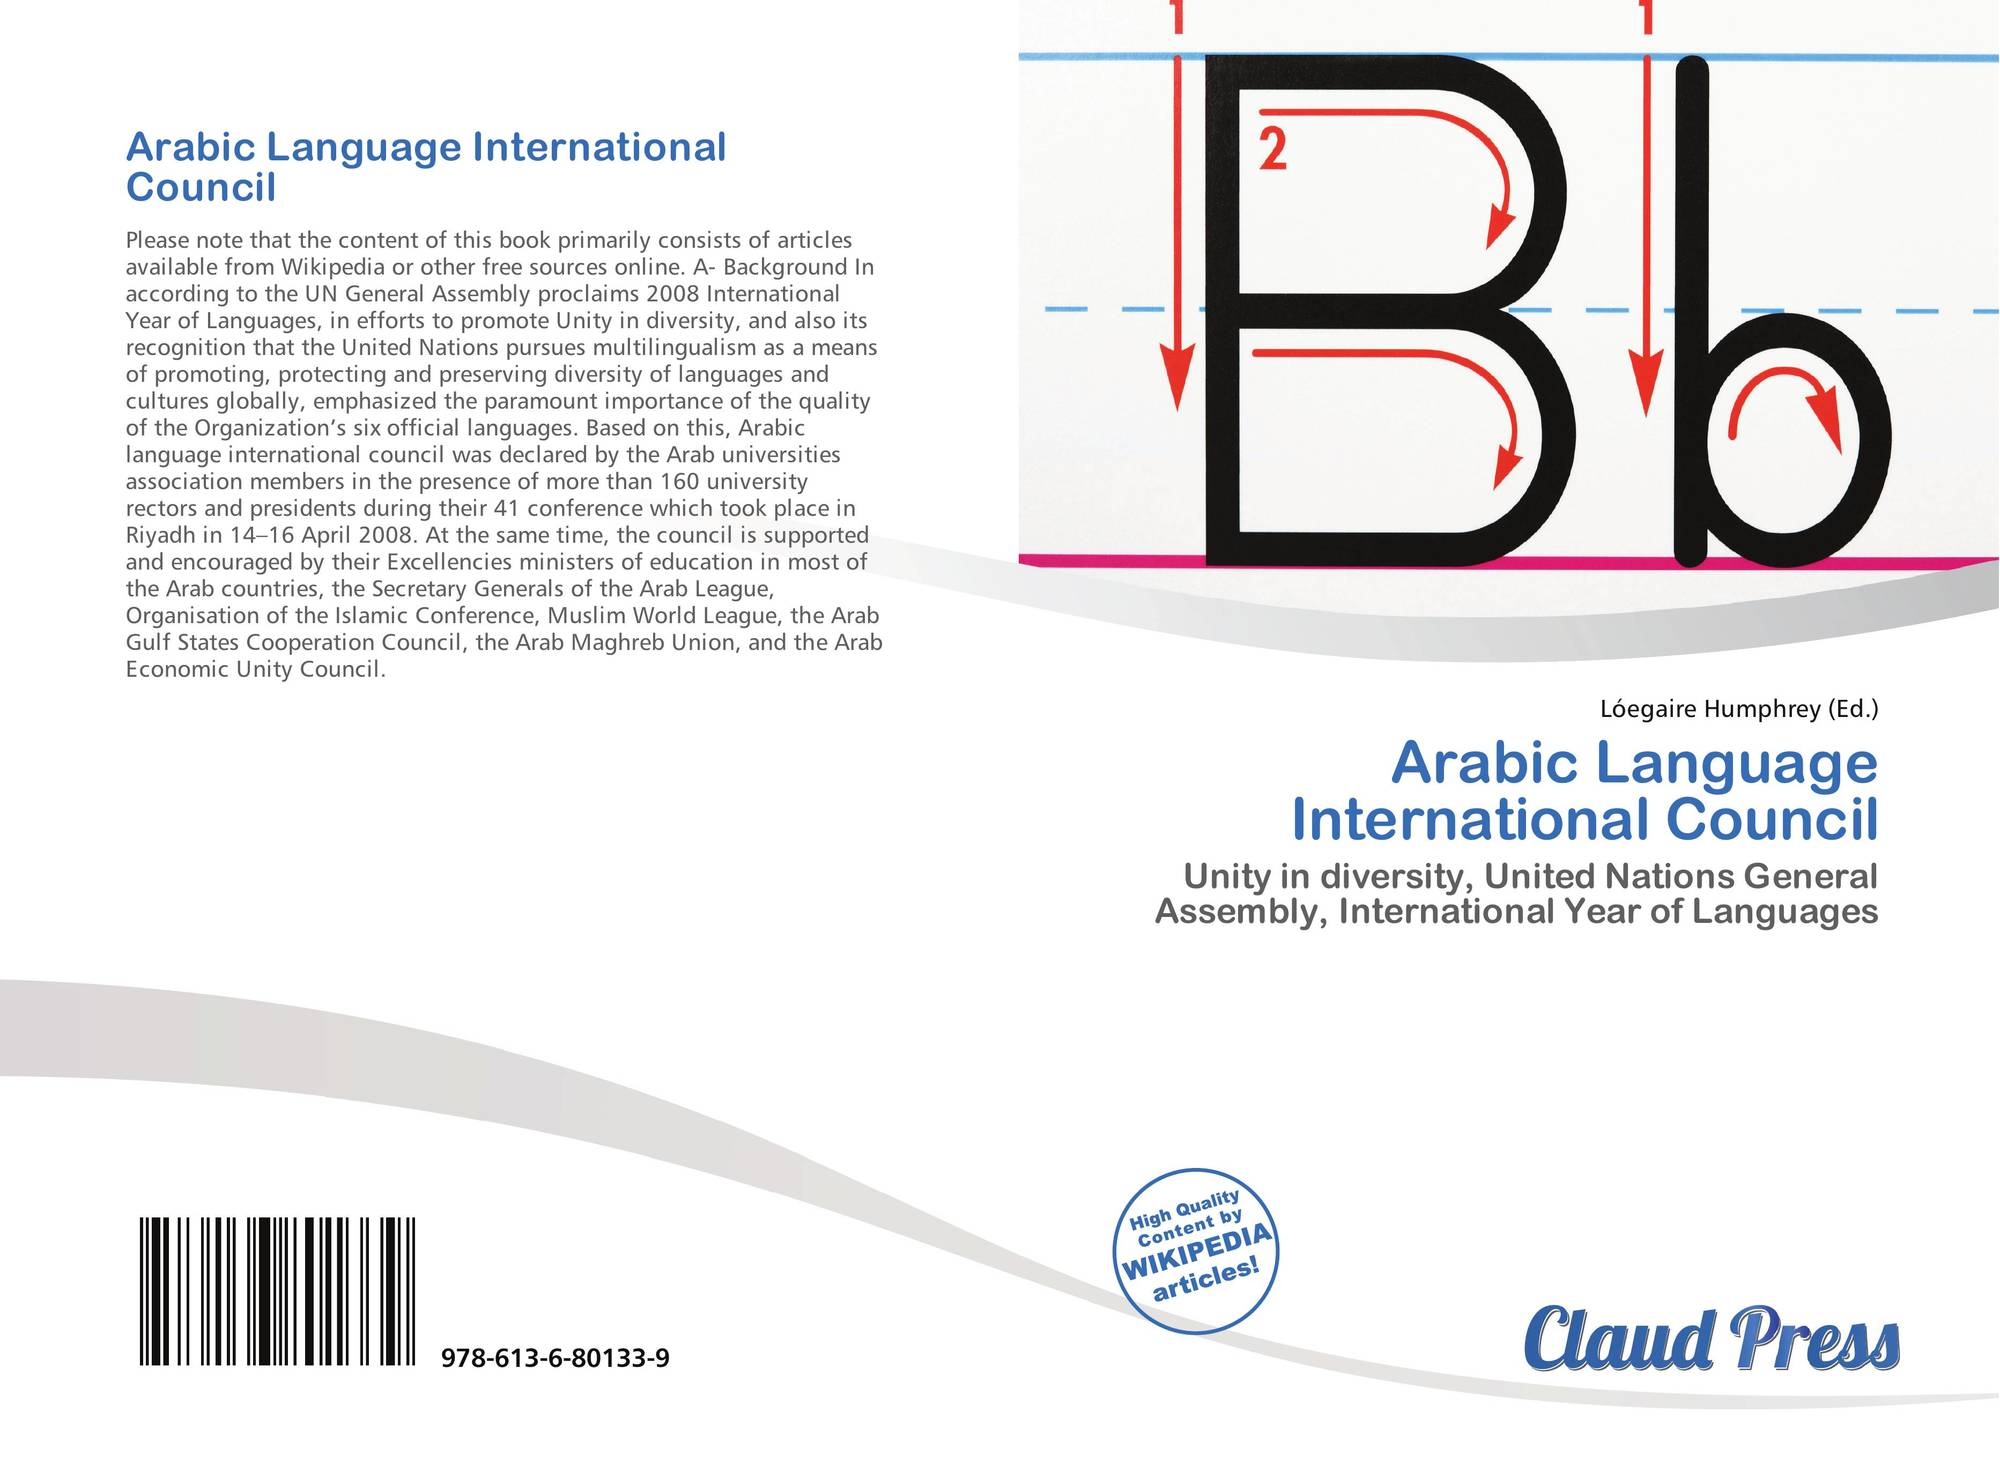 Arabic Language International Council, 978-613-6-80133-9, 6136801337